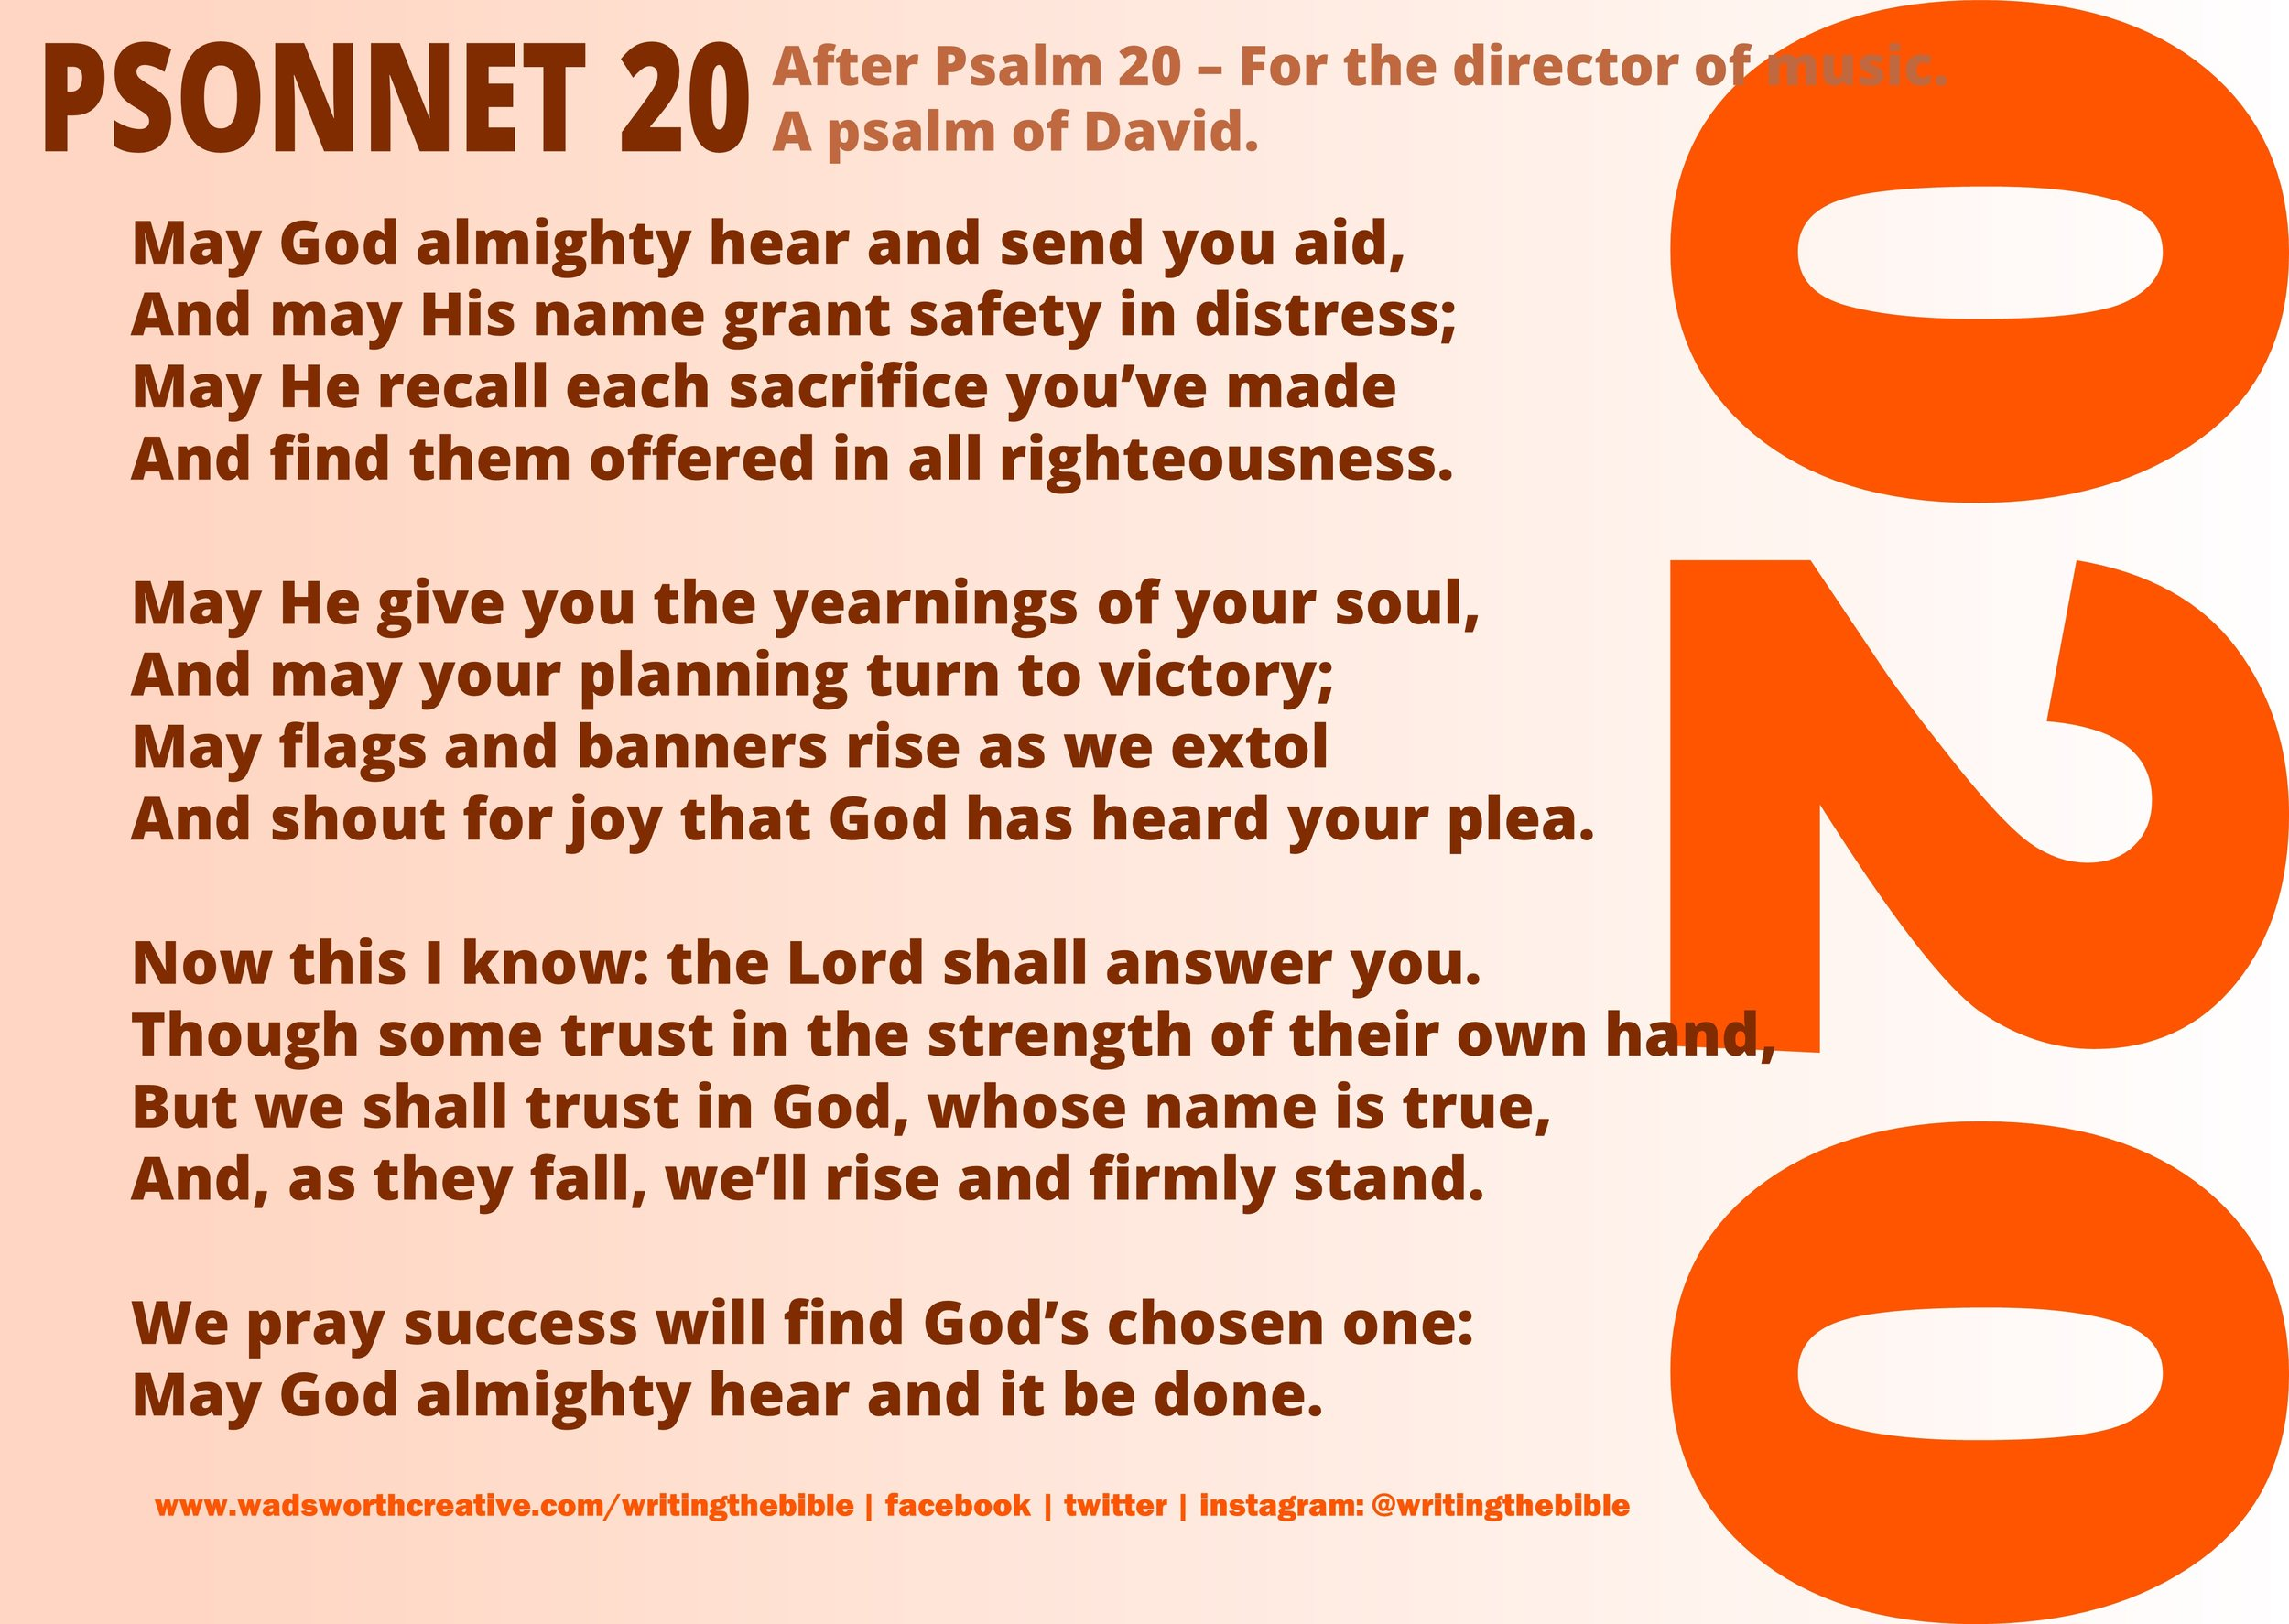 Psonnet 020 - Website.jpg